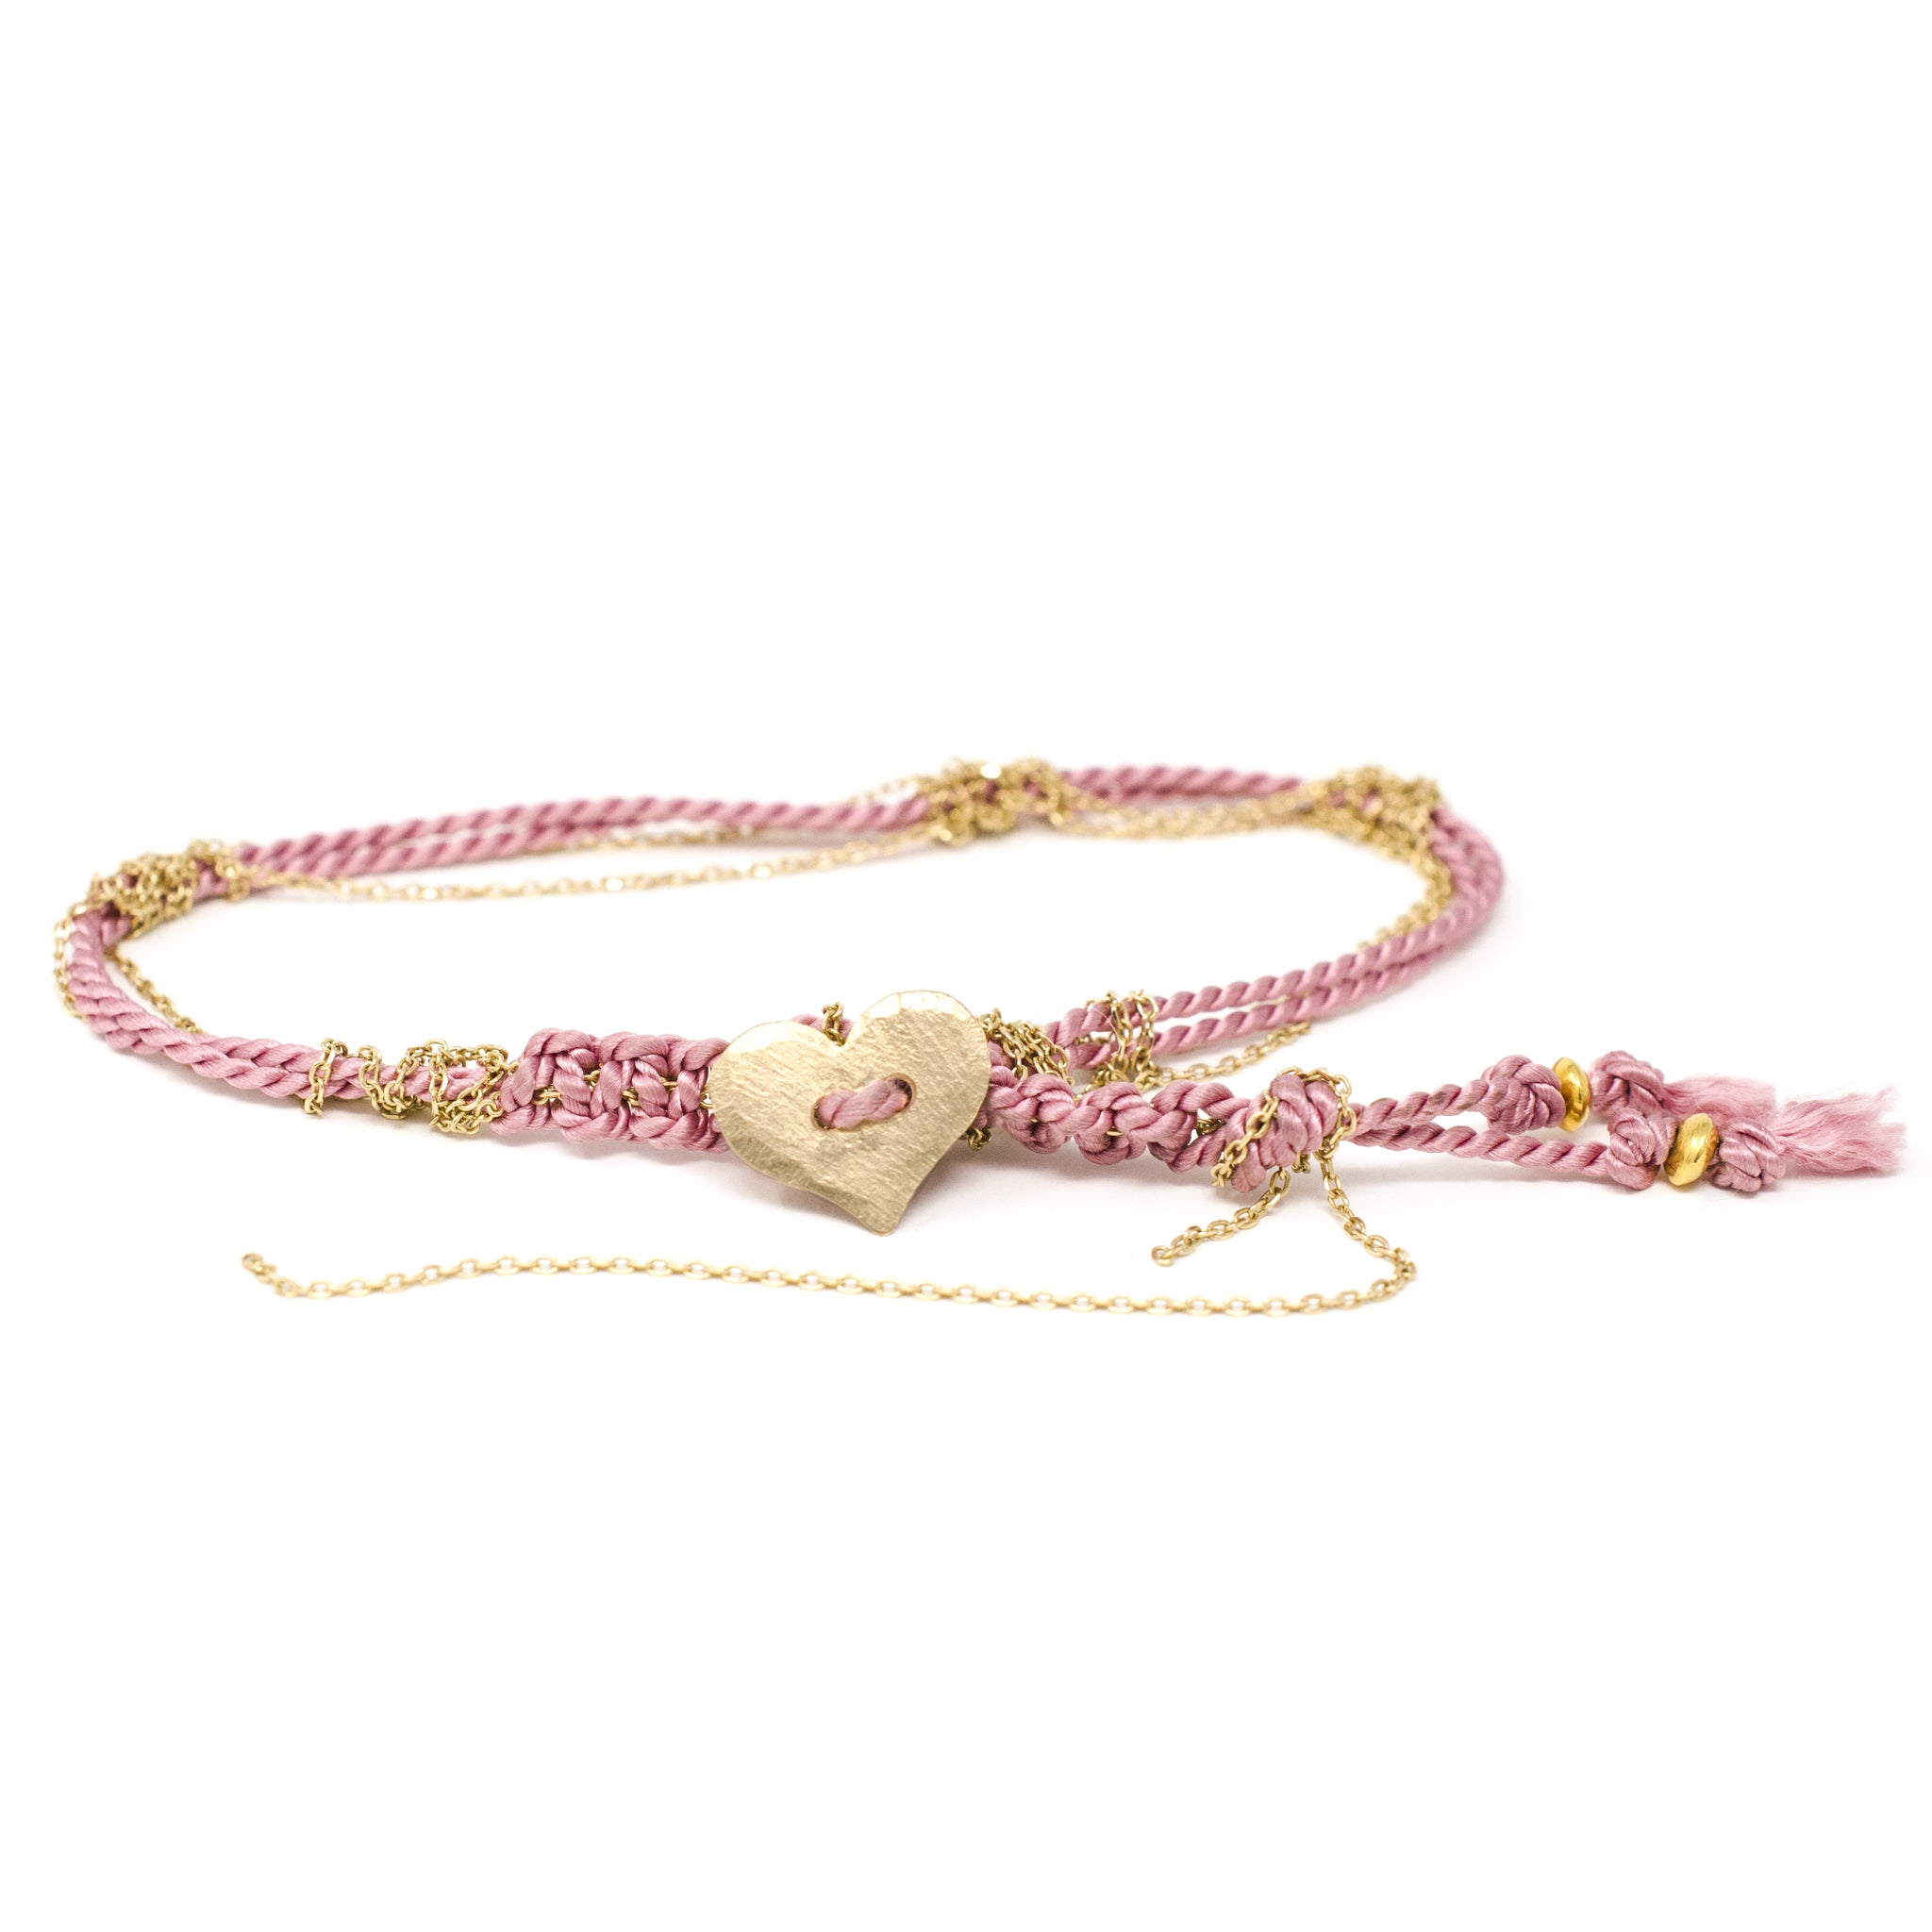 Adult Friendship Bracelet Pink